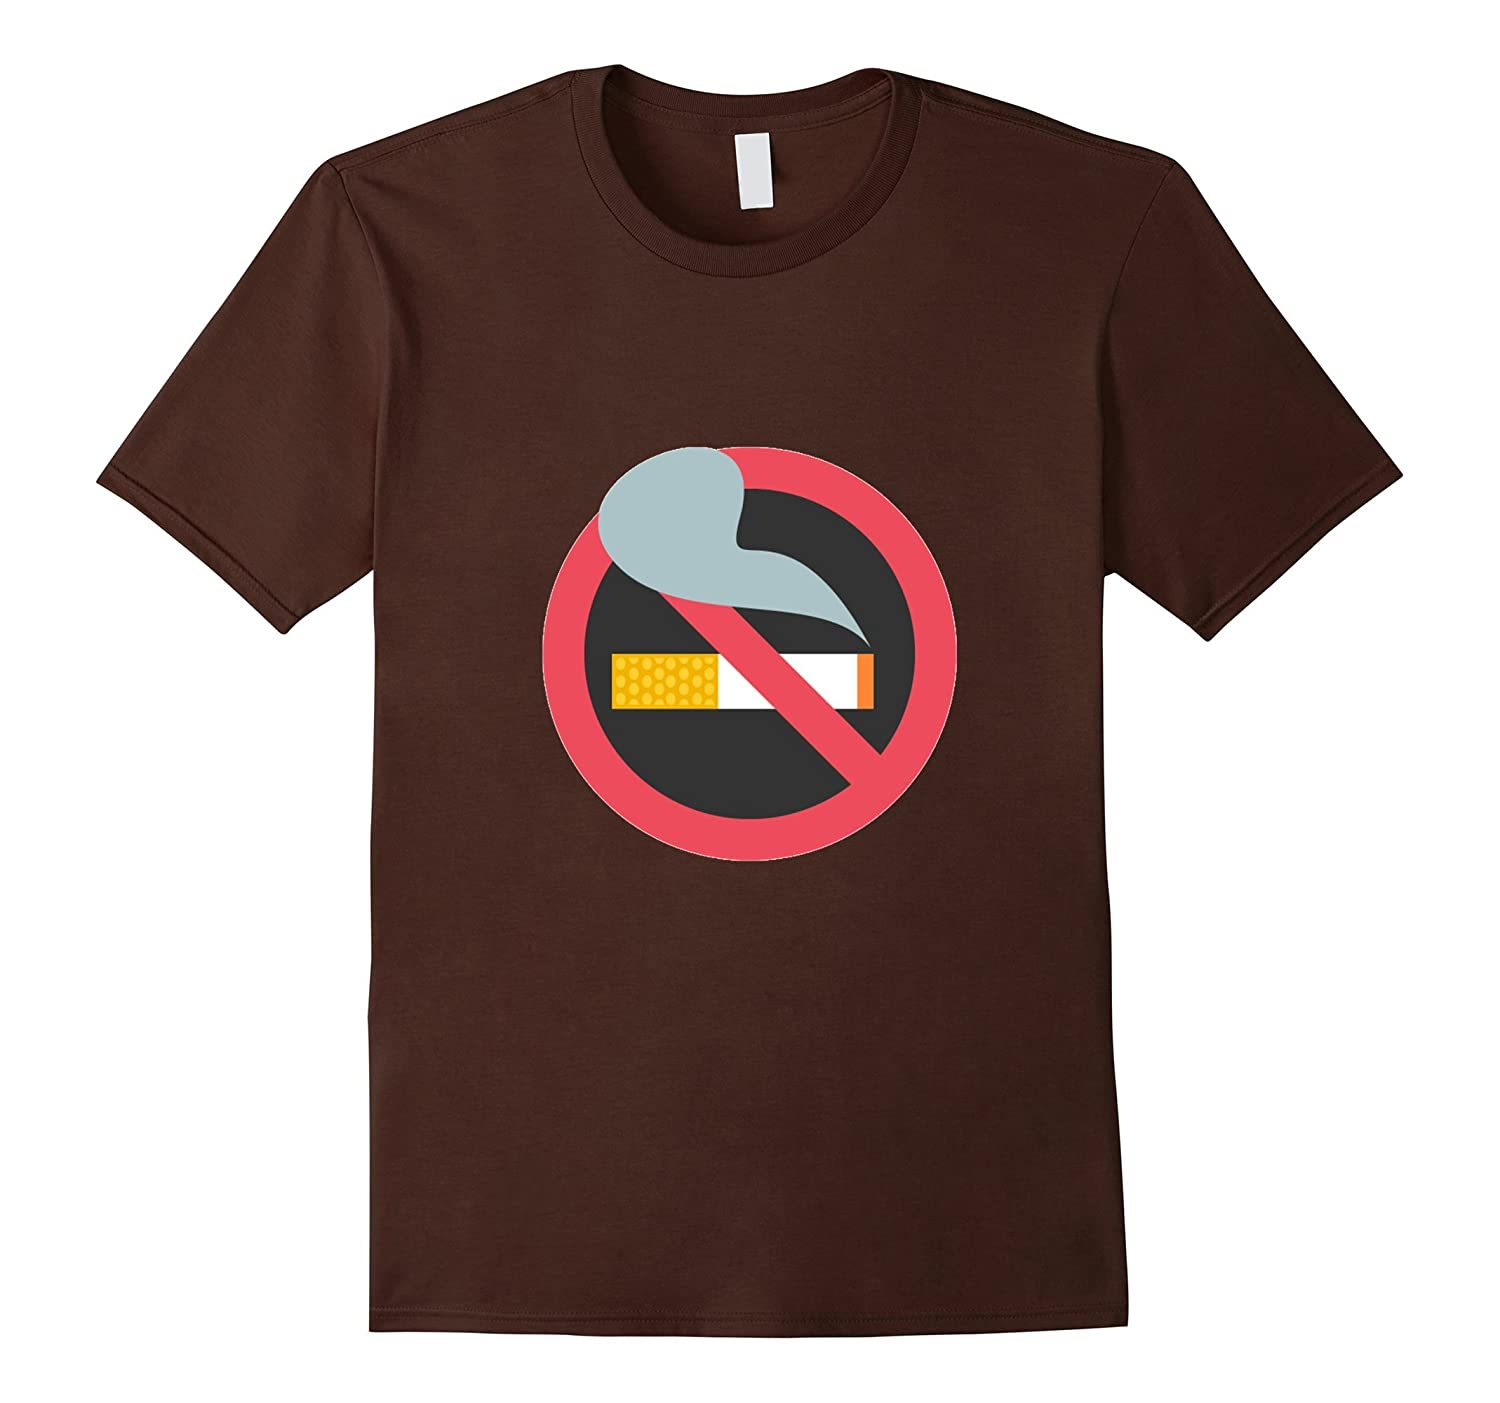 No Smoking Sign Emoji T-Shirt Cigarette Permitted Prohibited-CL